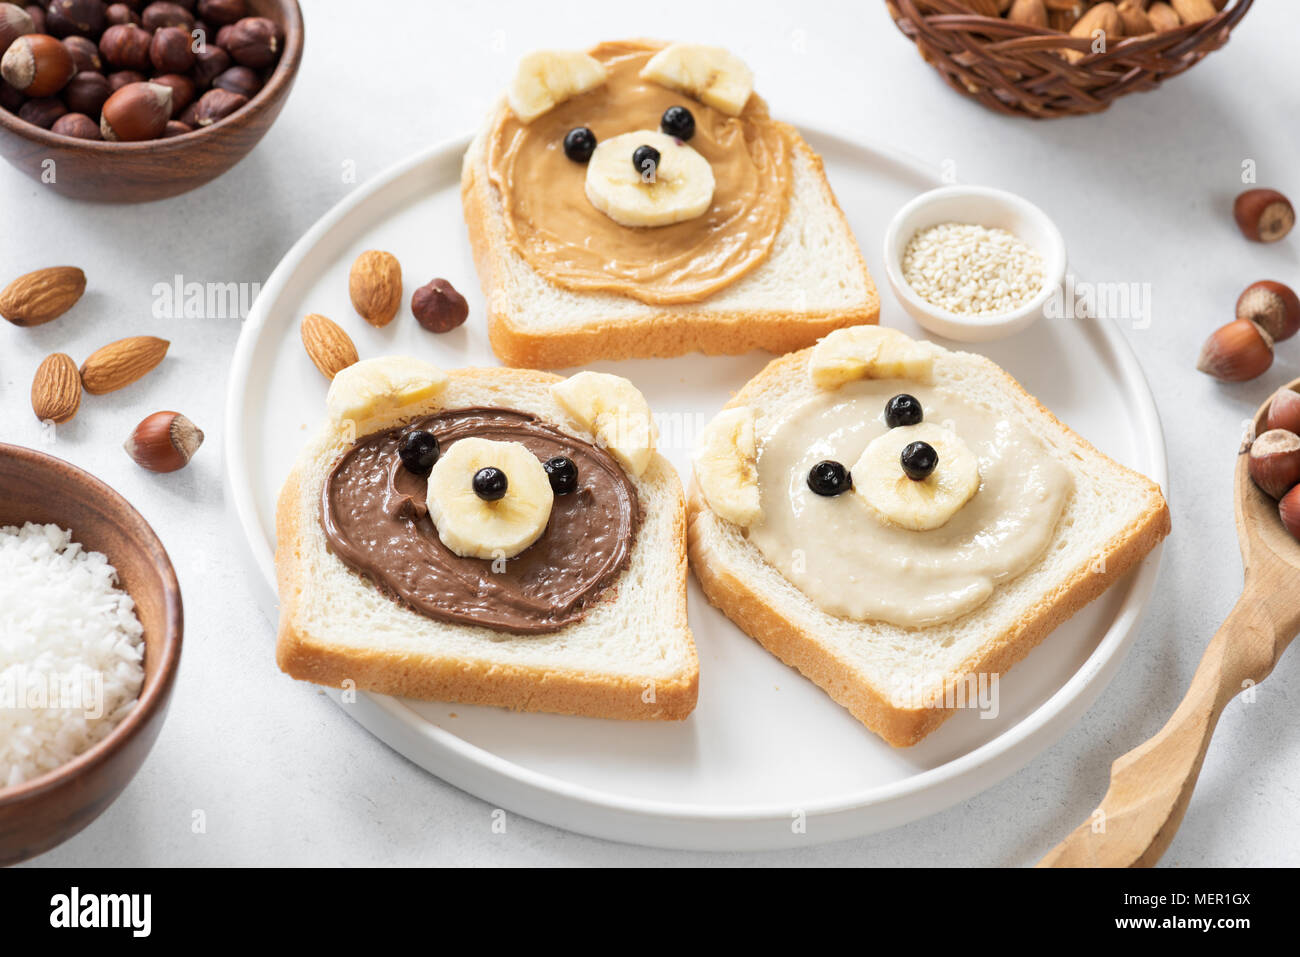 Vegan nut butter toasts with animal faces. Healthy breakfast for kids. Selective focus. Concept of vegan, healthy lifestyle, peanut butter banana, foo - Stock Image